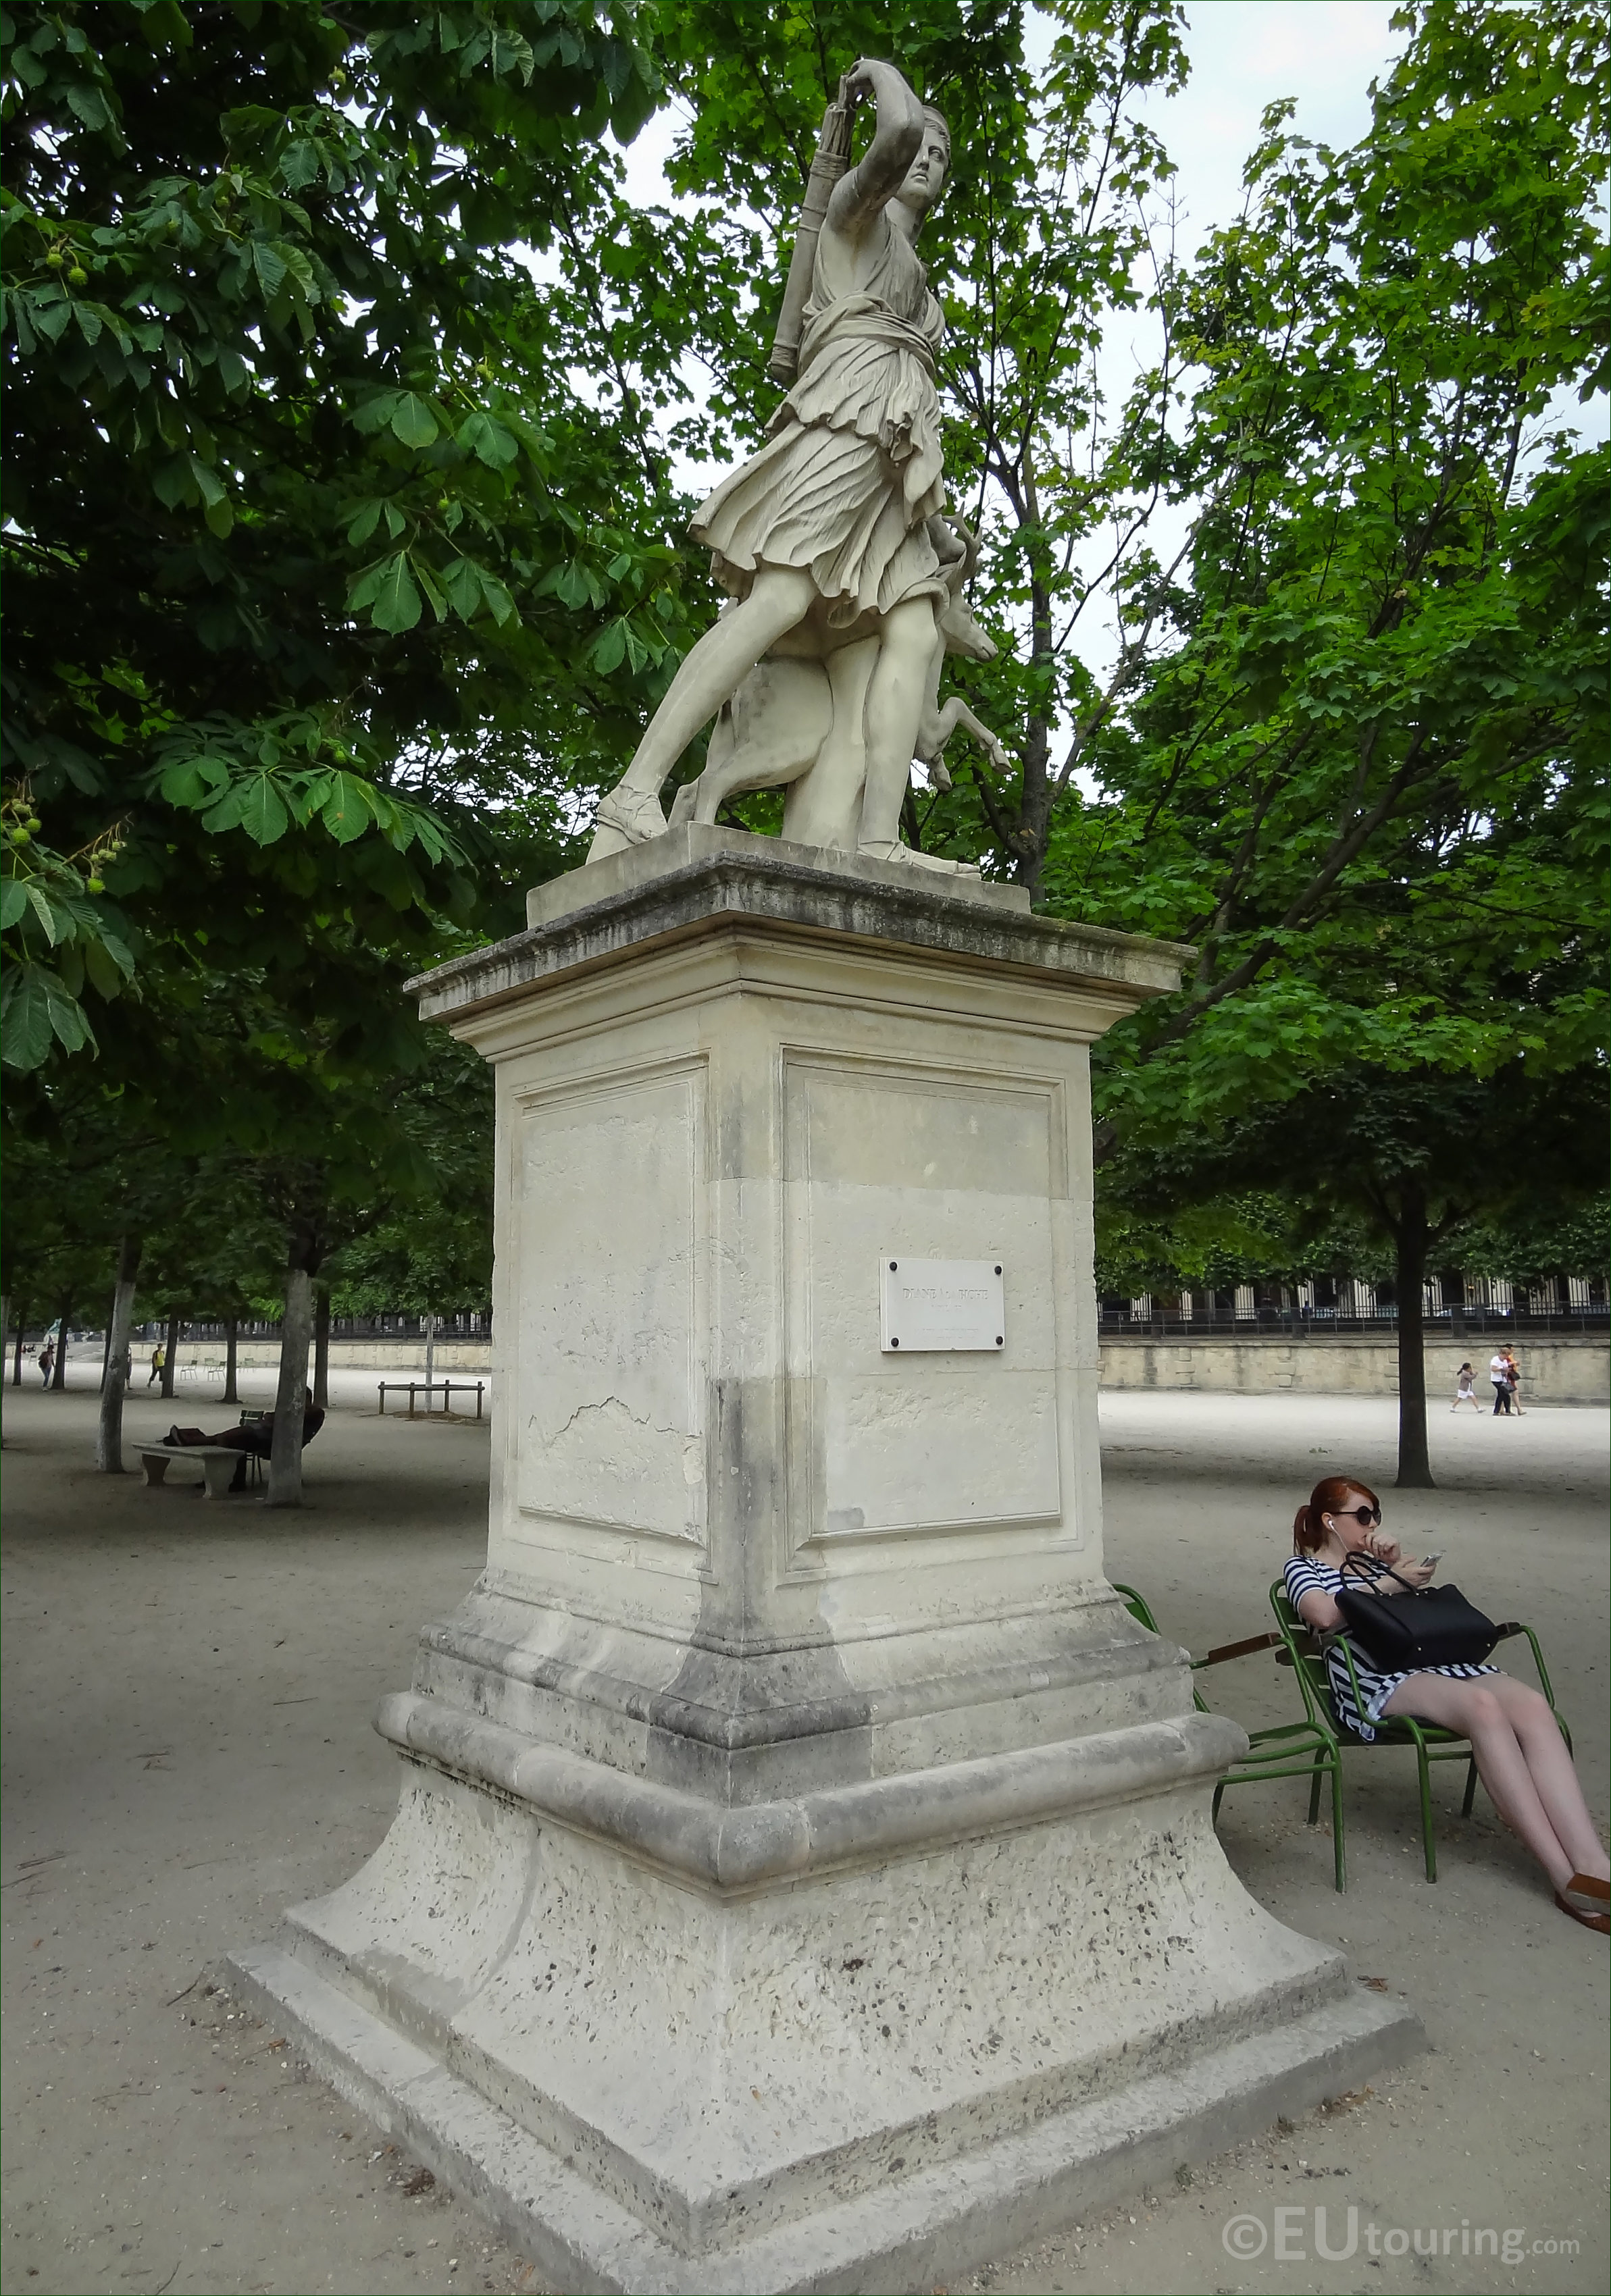 photos of diane a la biche statue in jardin des tuileries page 679. Black Bedroom Furniture Sets. Home Design Ideas